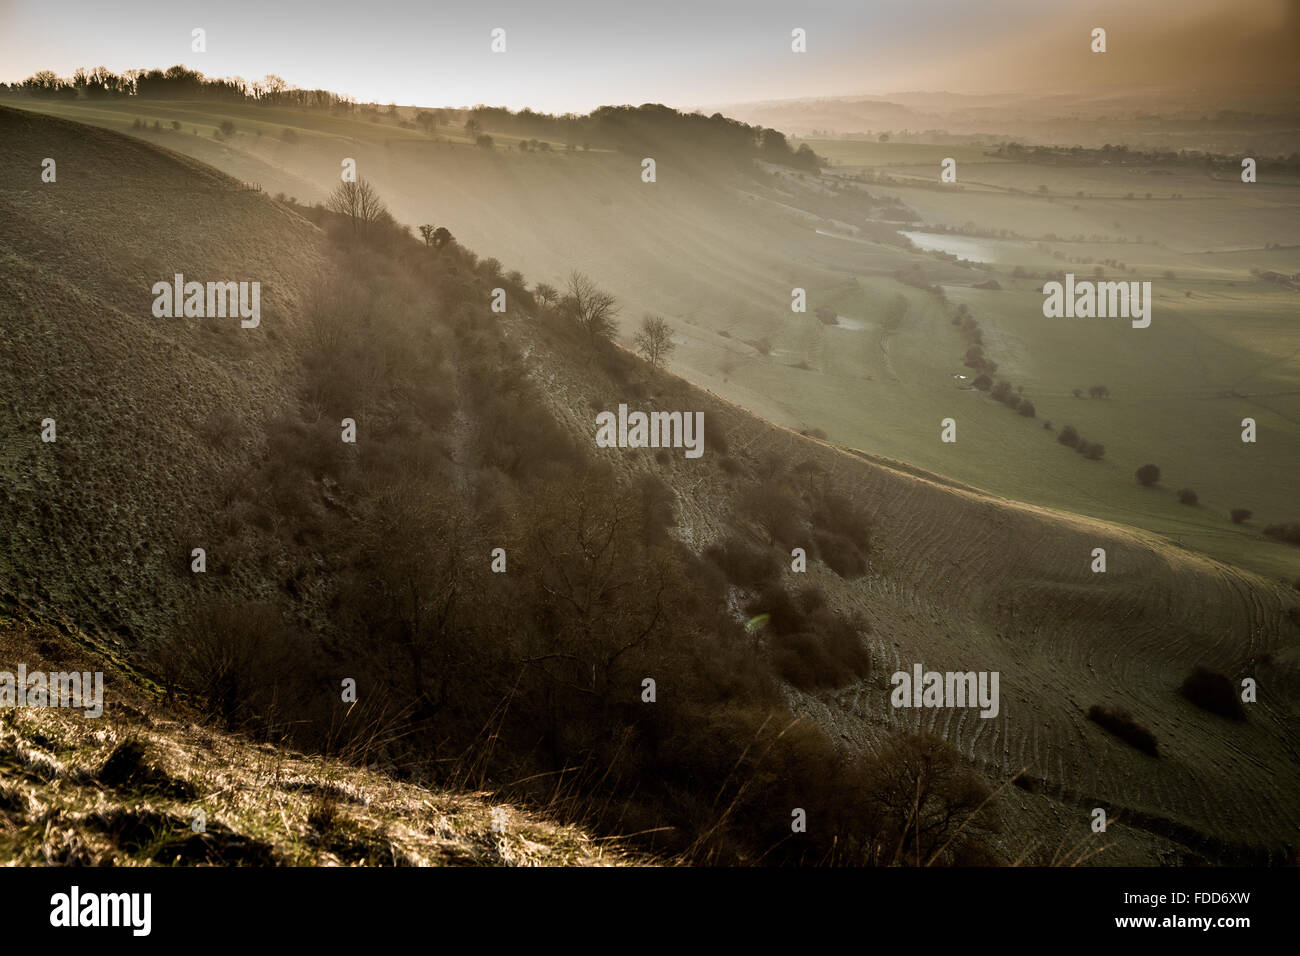 Frost hillside slopes & sunset over Wiltshire countryside near the town of Westbury from Bratton Camp and Westbury Stock Photo